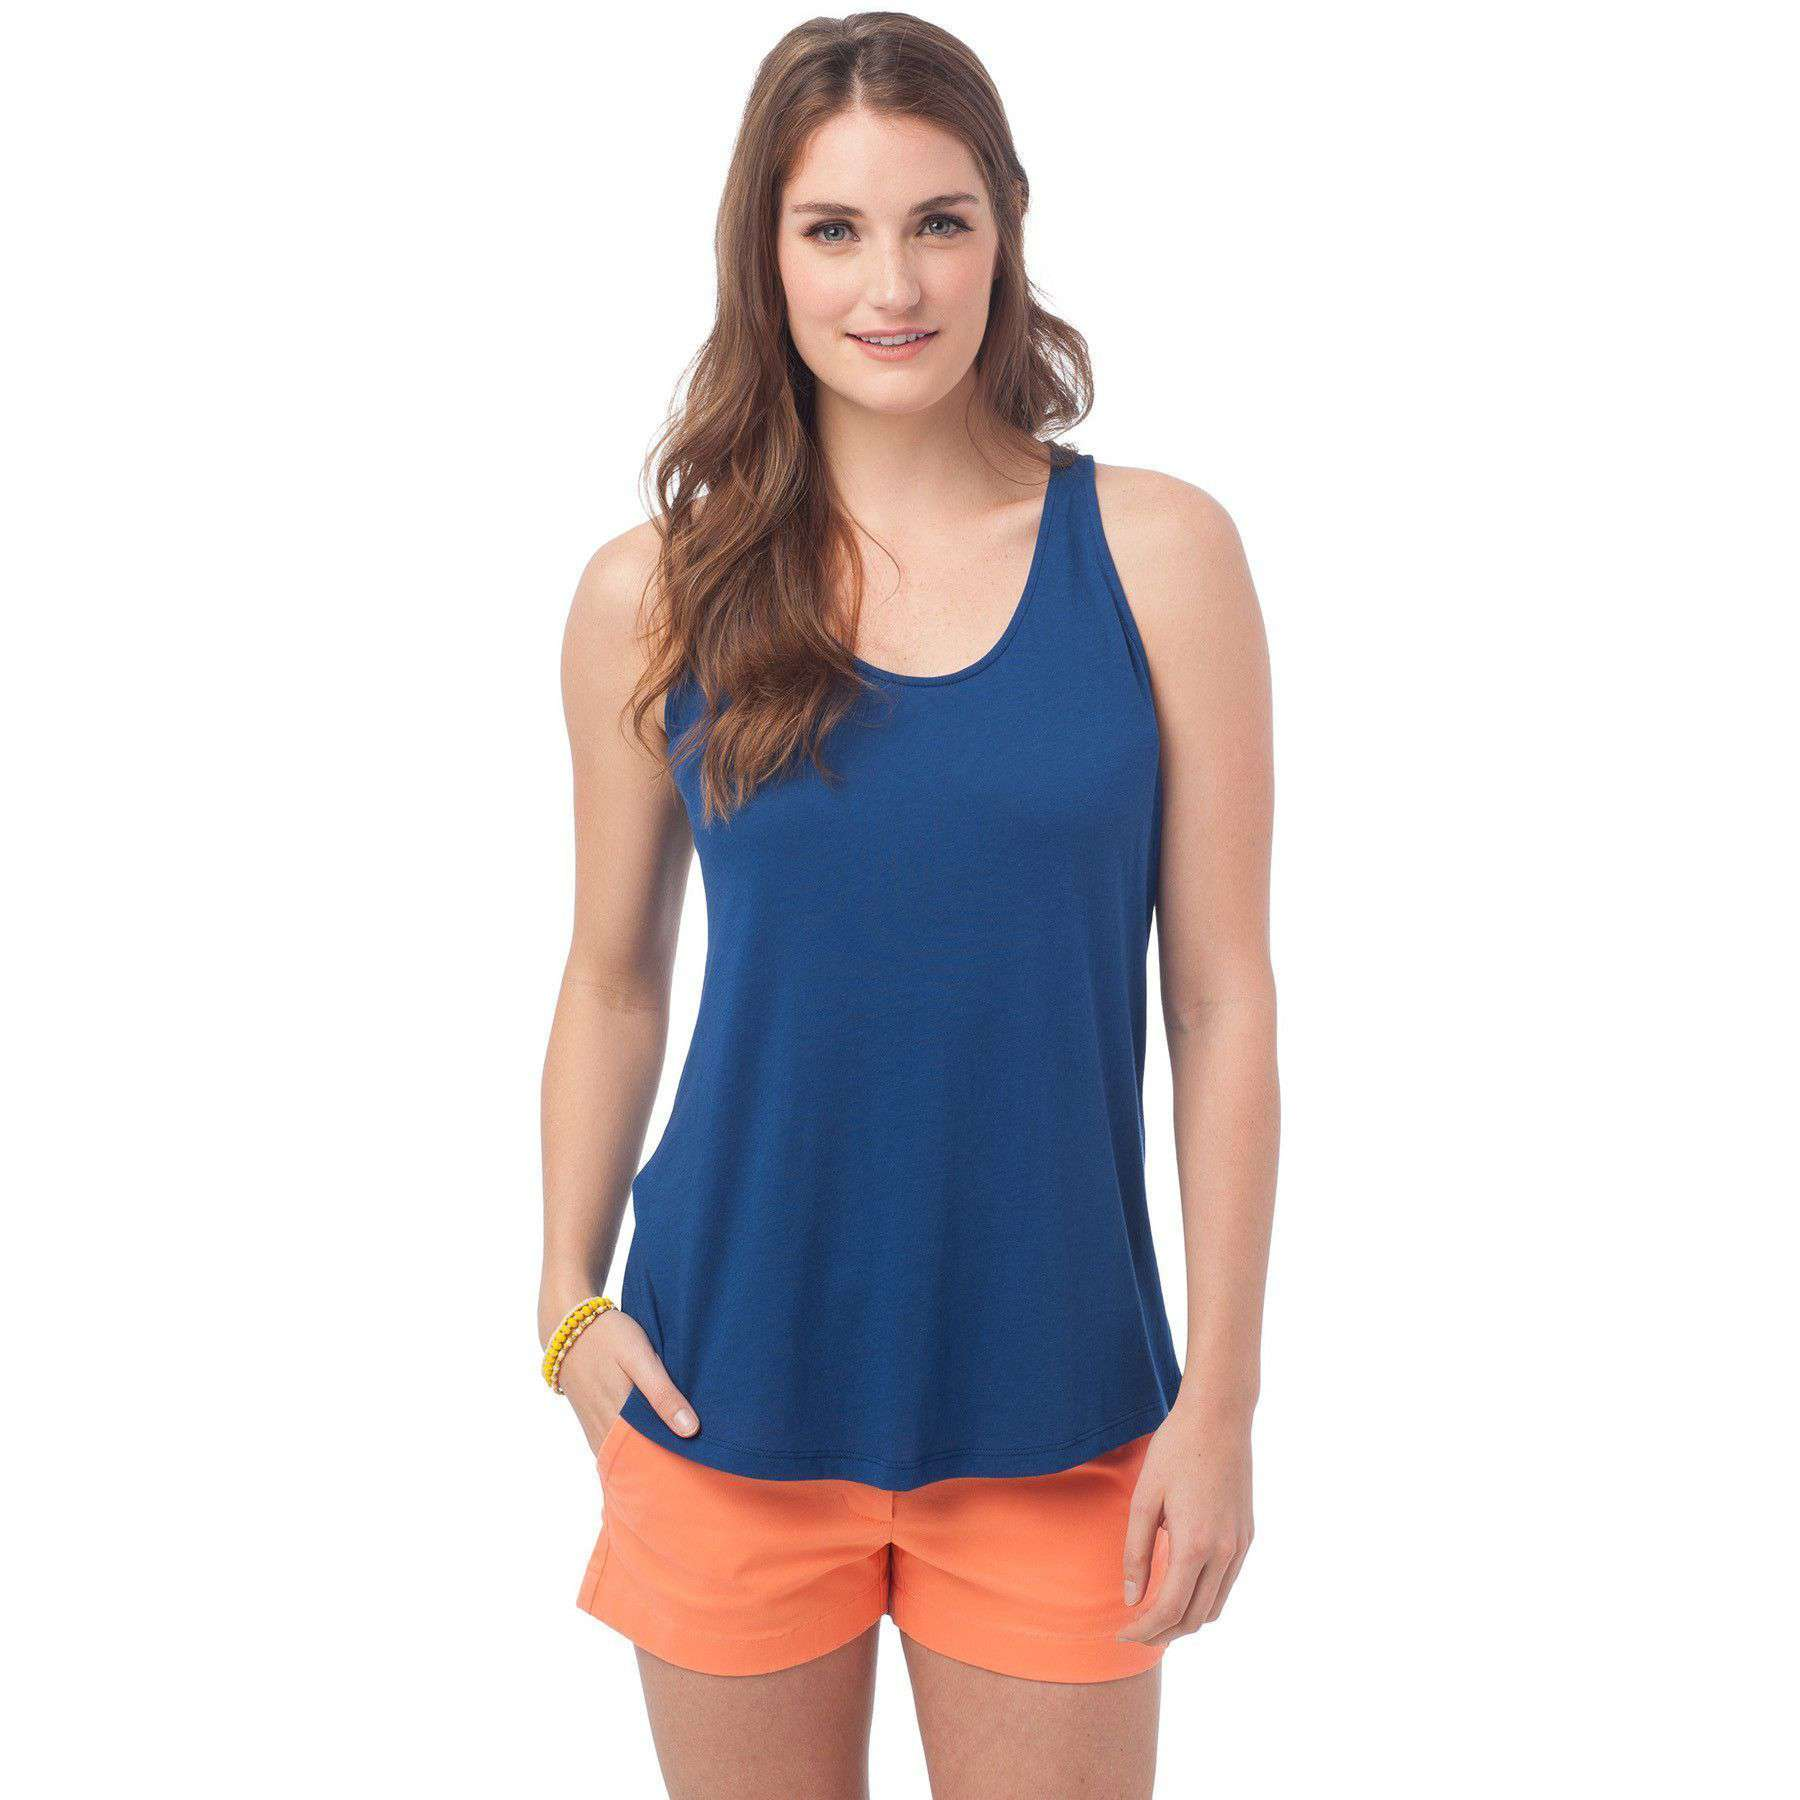 Women's Tops - Anna Tank In Yacht Blue By Southern Tide - FINAL SALE